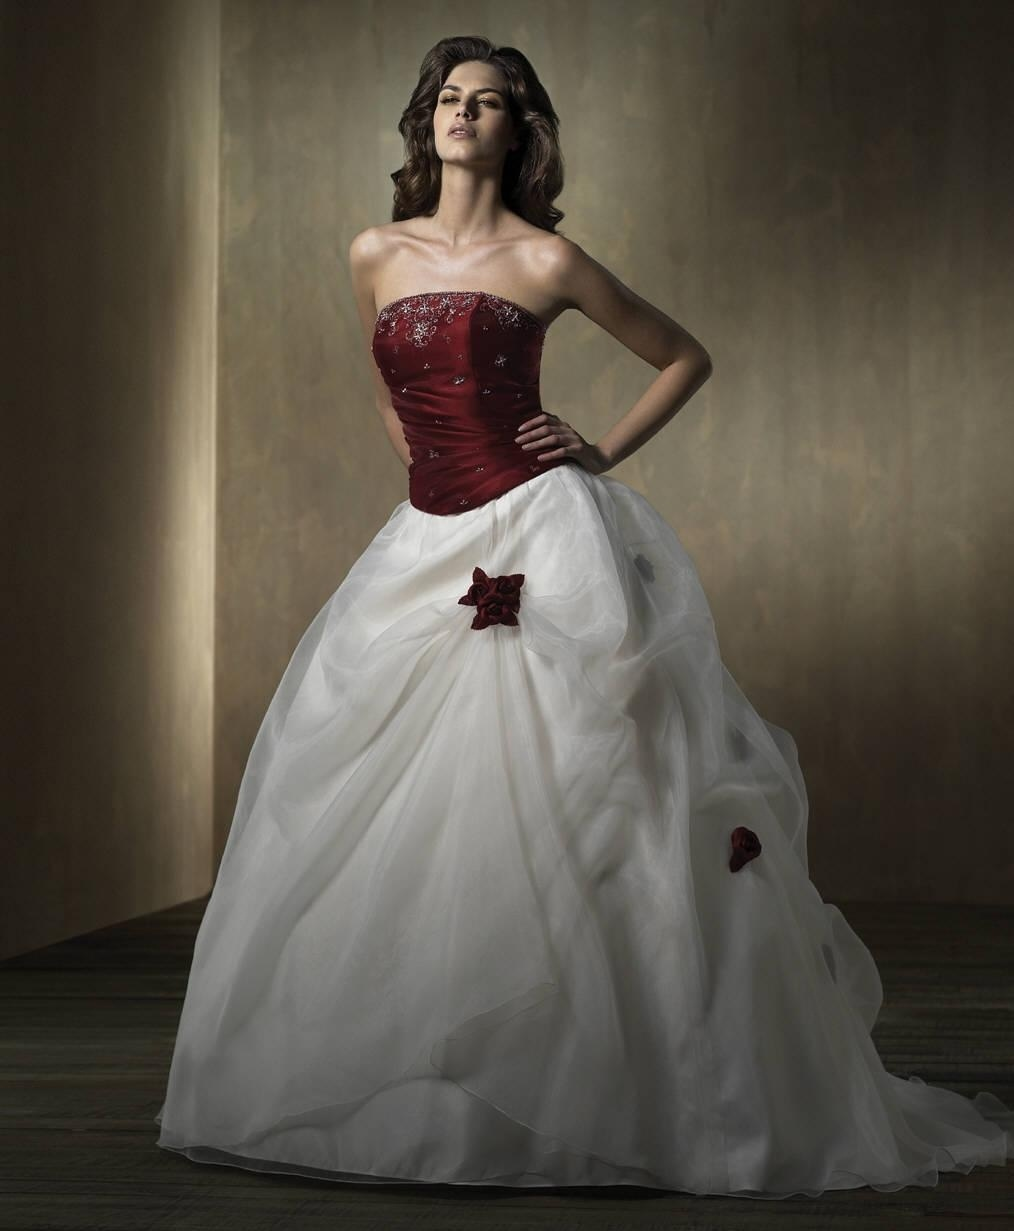 China wedding dress with color eurowd052 china wedding for Wedding dresses in color